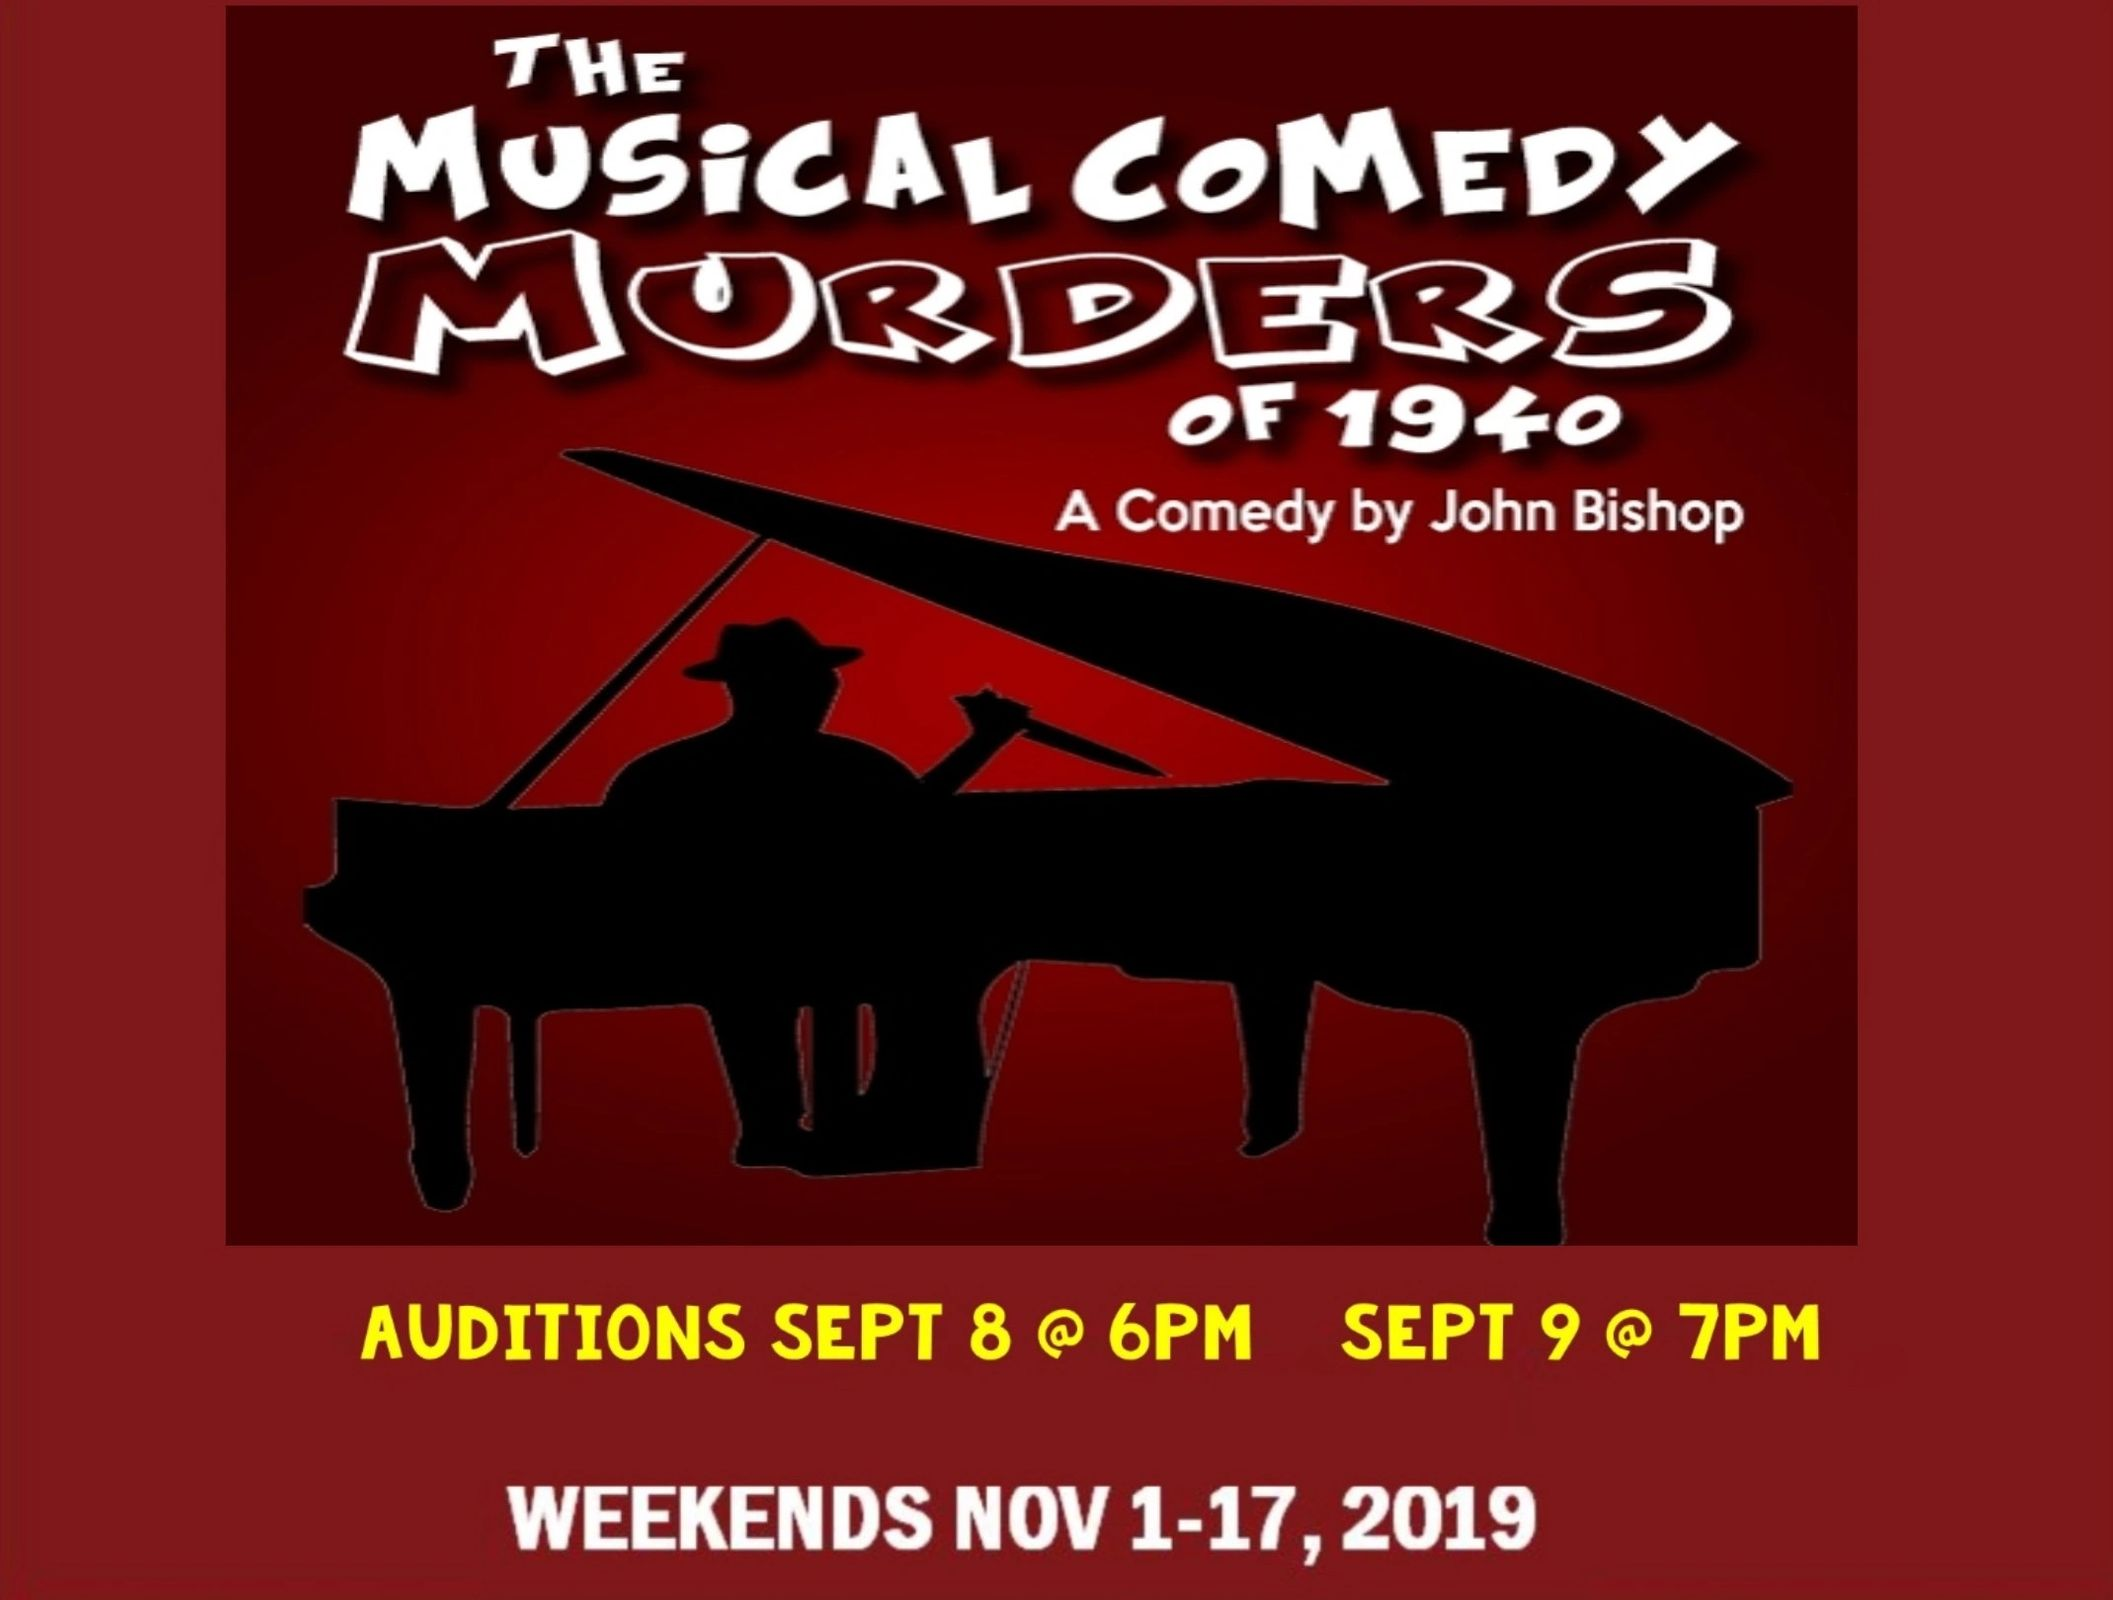 Auditions for The Musical Comedy Murders of 1940, by Rialto Theatre, Aransas Pass